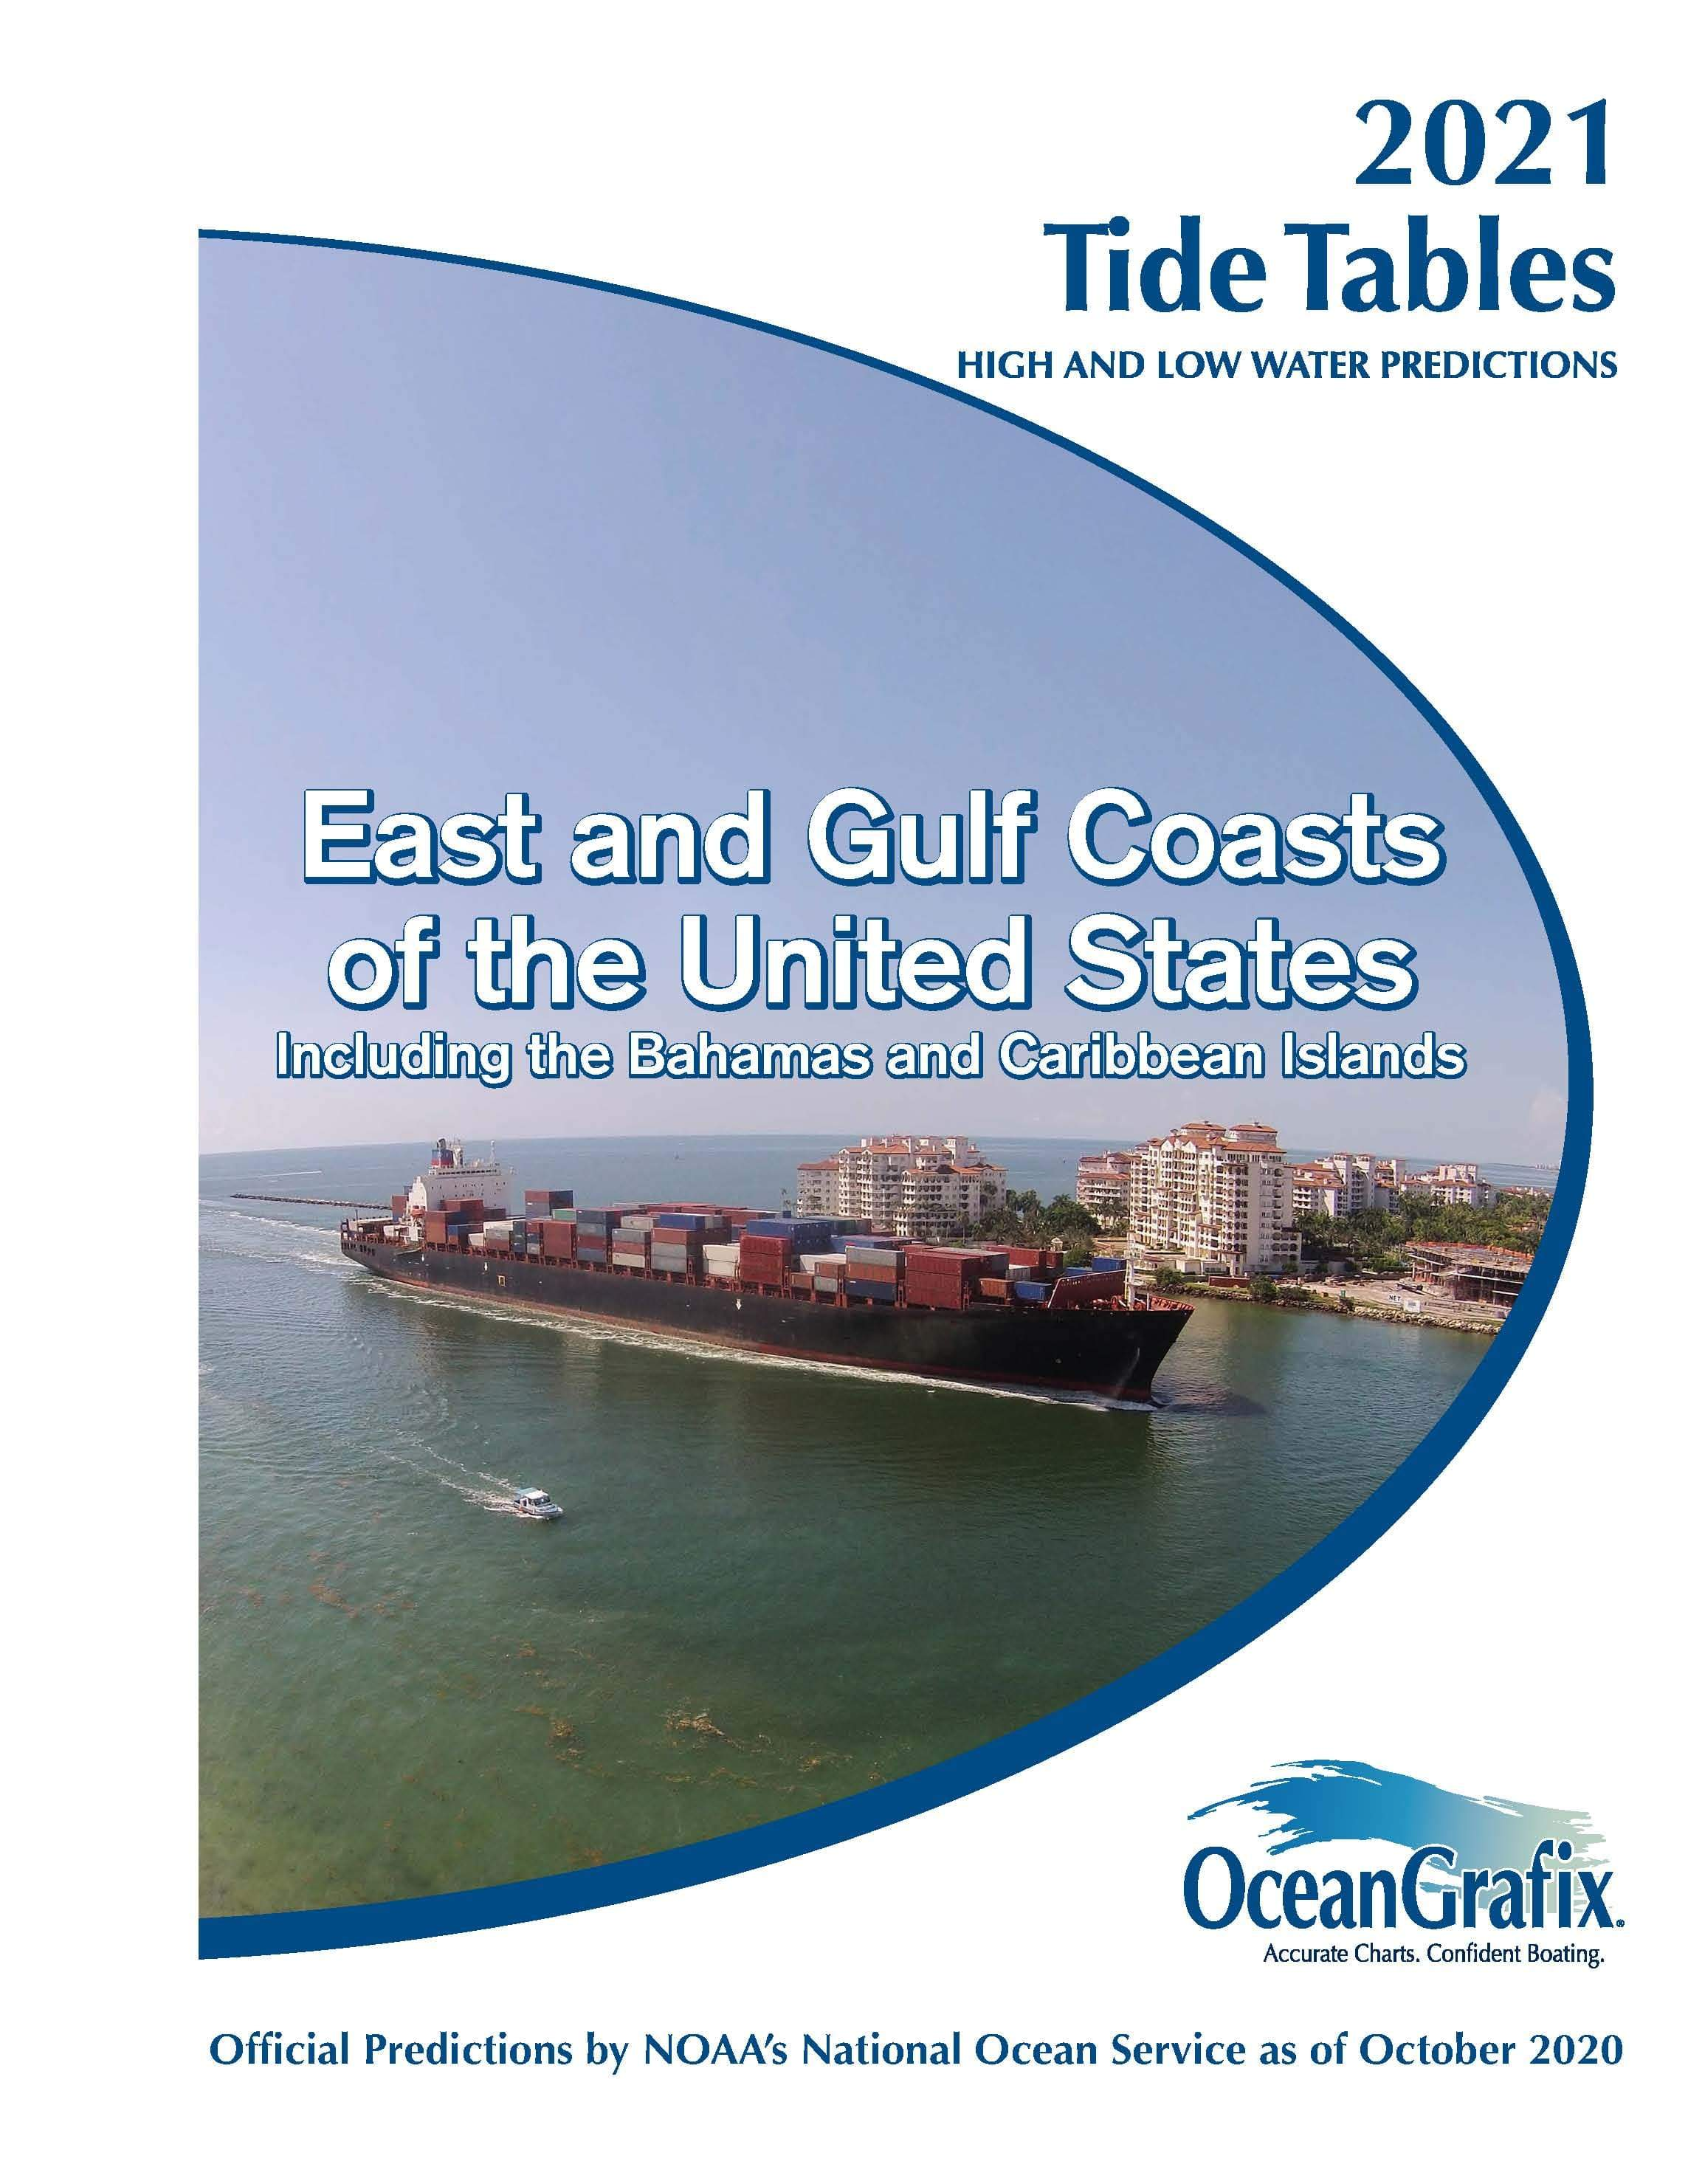 Tide Tables 2021 East and Gulf Coasts of the United States